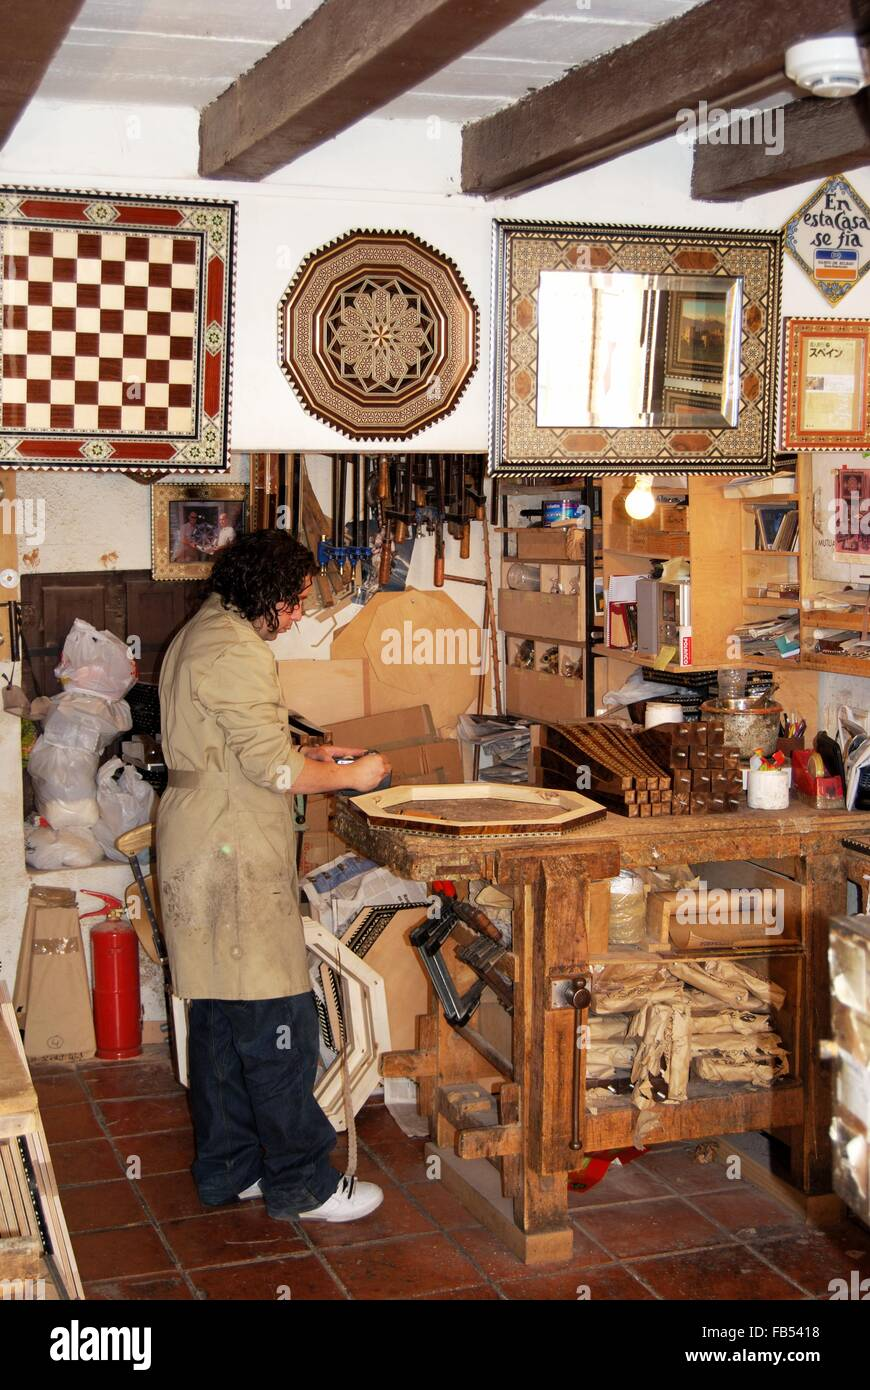 A Carpenter Making Moroccan Style Furniture Inside A Workshop, Palace Of  Alhambra, Granada, Granada Province, Andalusia, Spain,